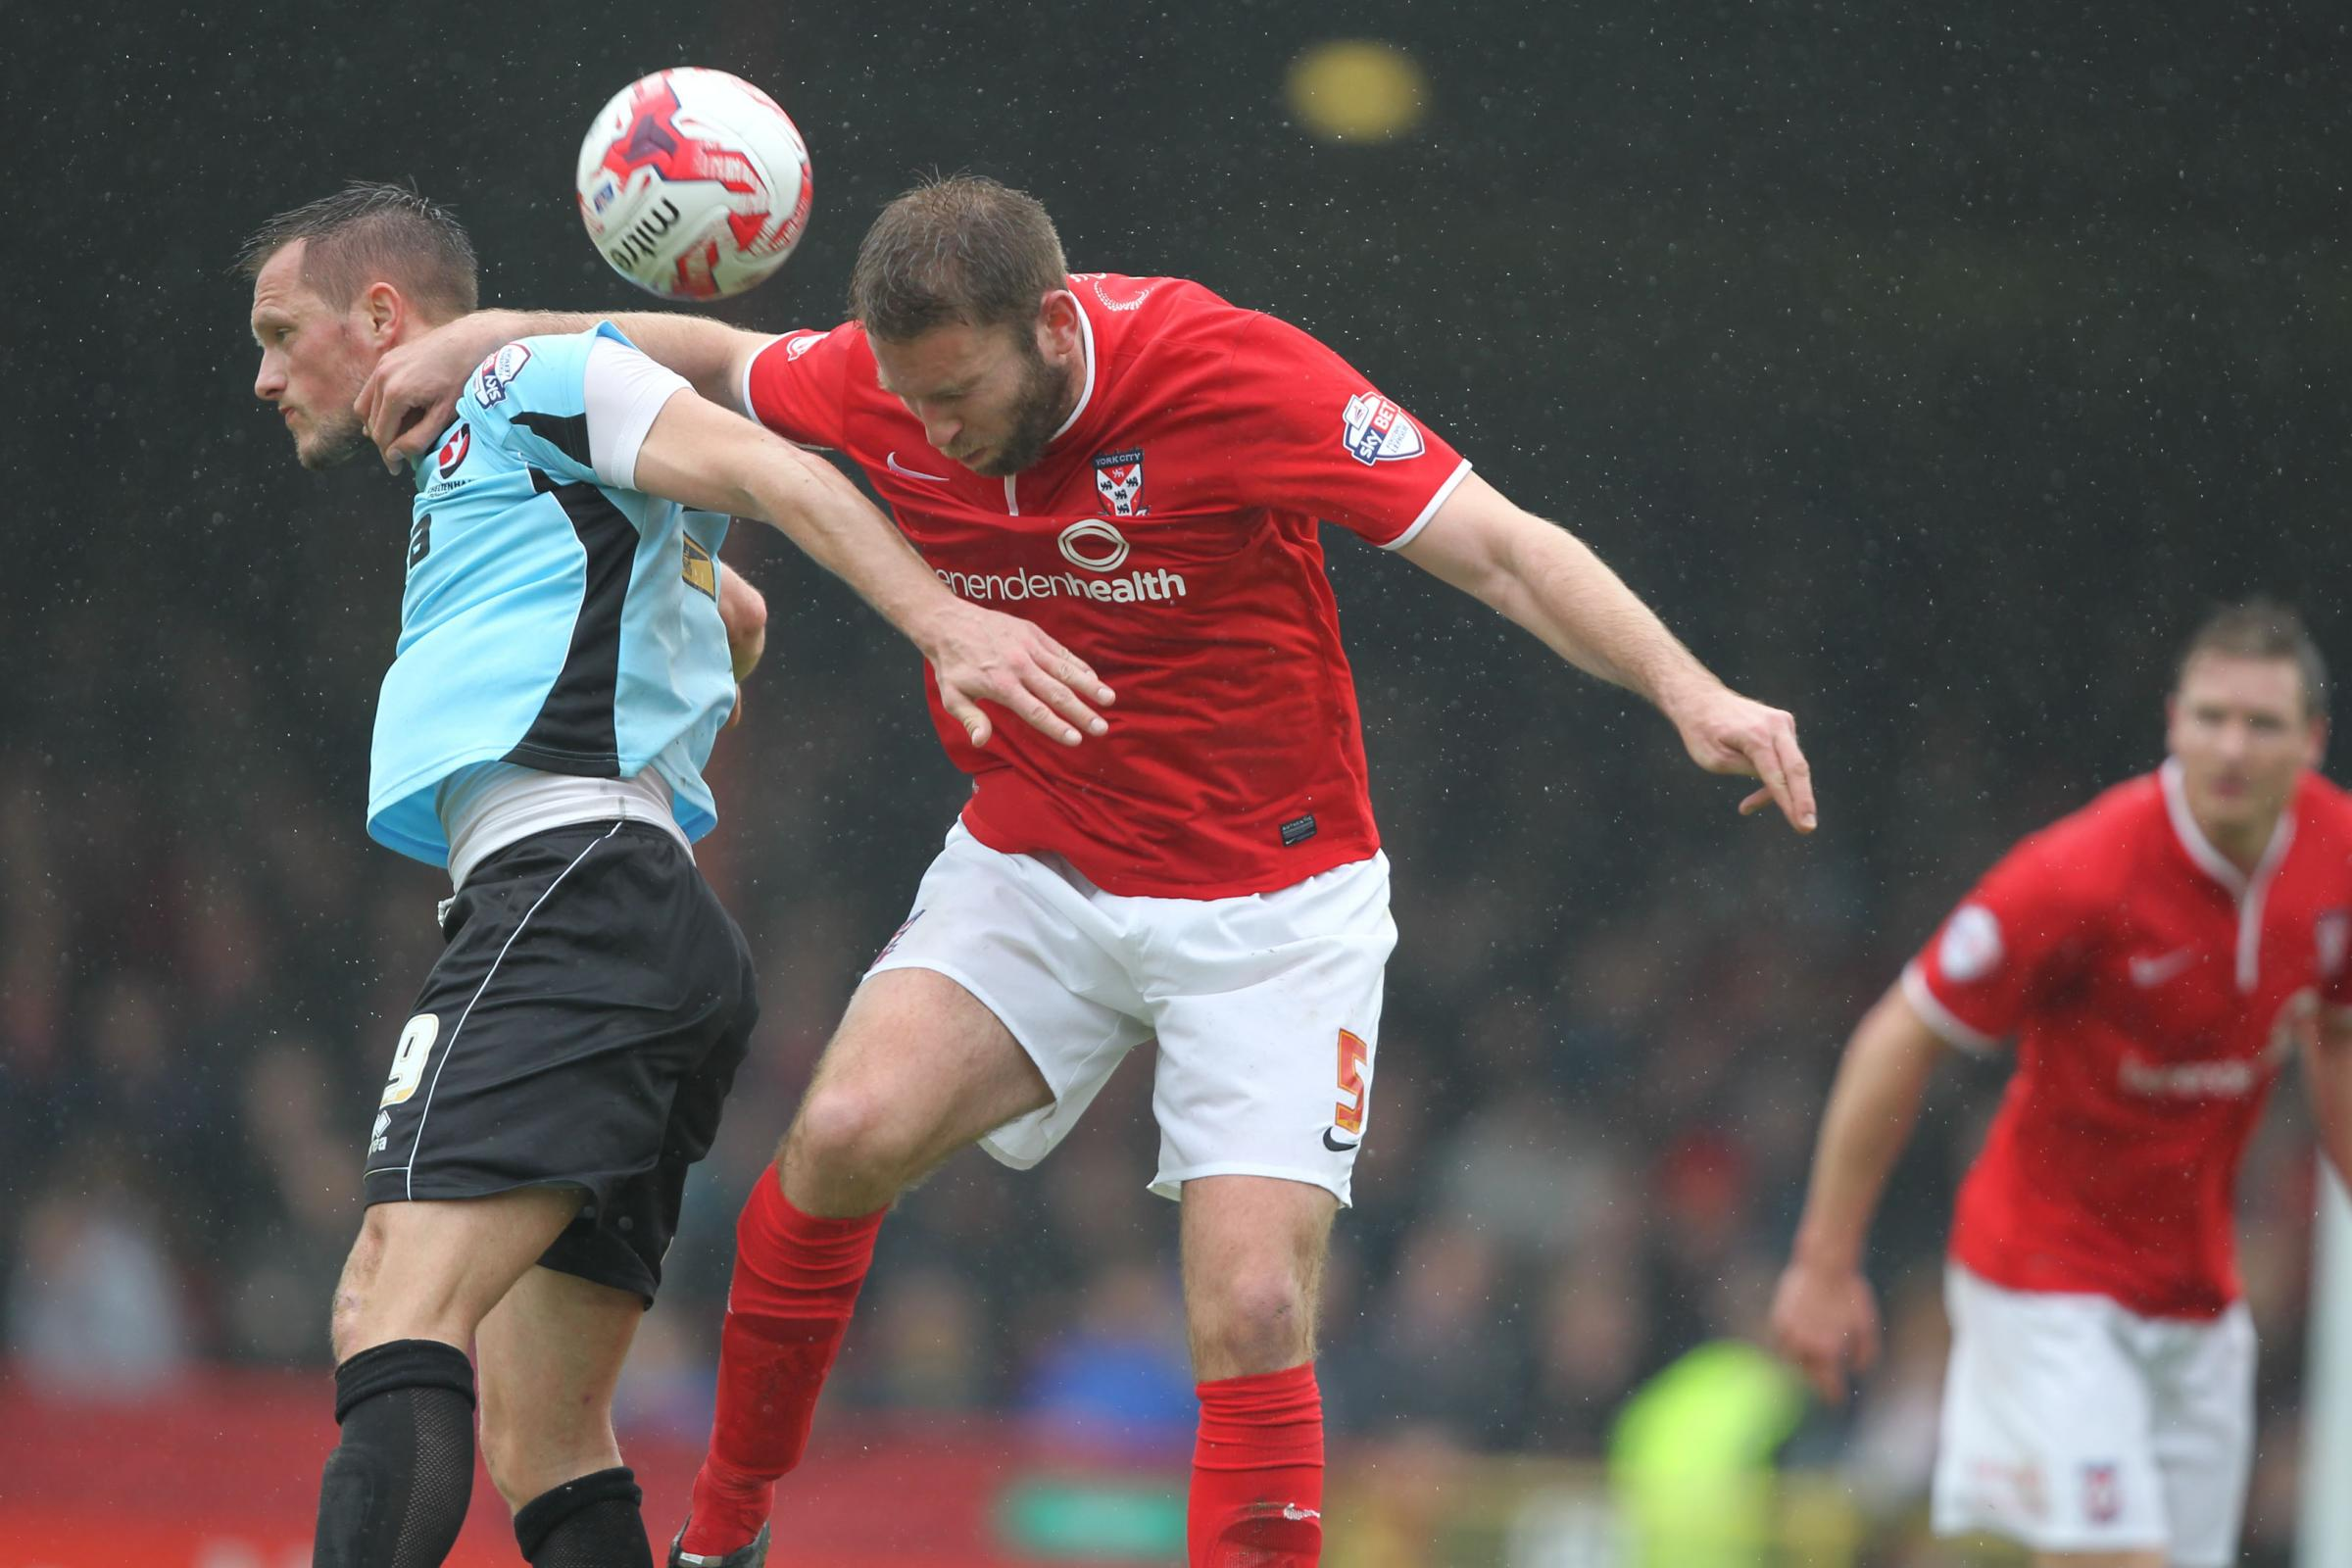 HEADING IN THE RIGHT DIRECTION: John McCombe in aerial action during York City's vital 1-0 victory over Cheltenham